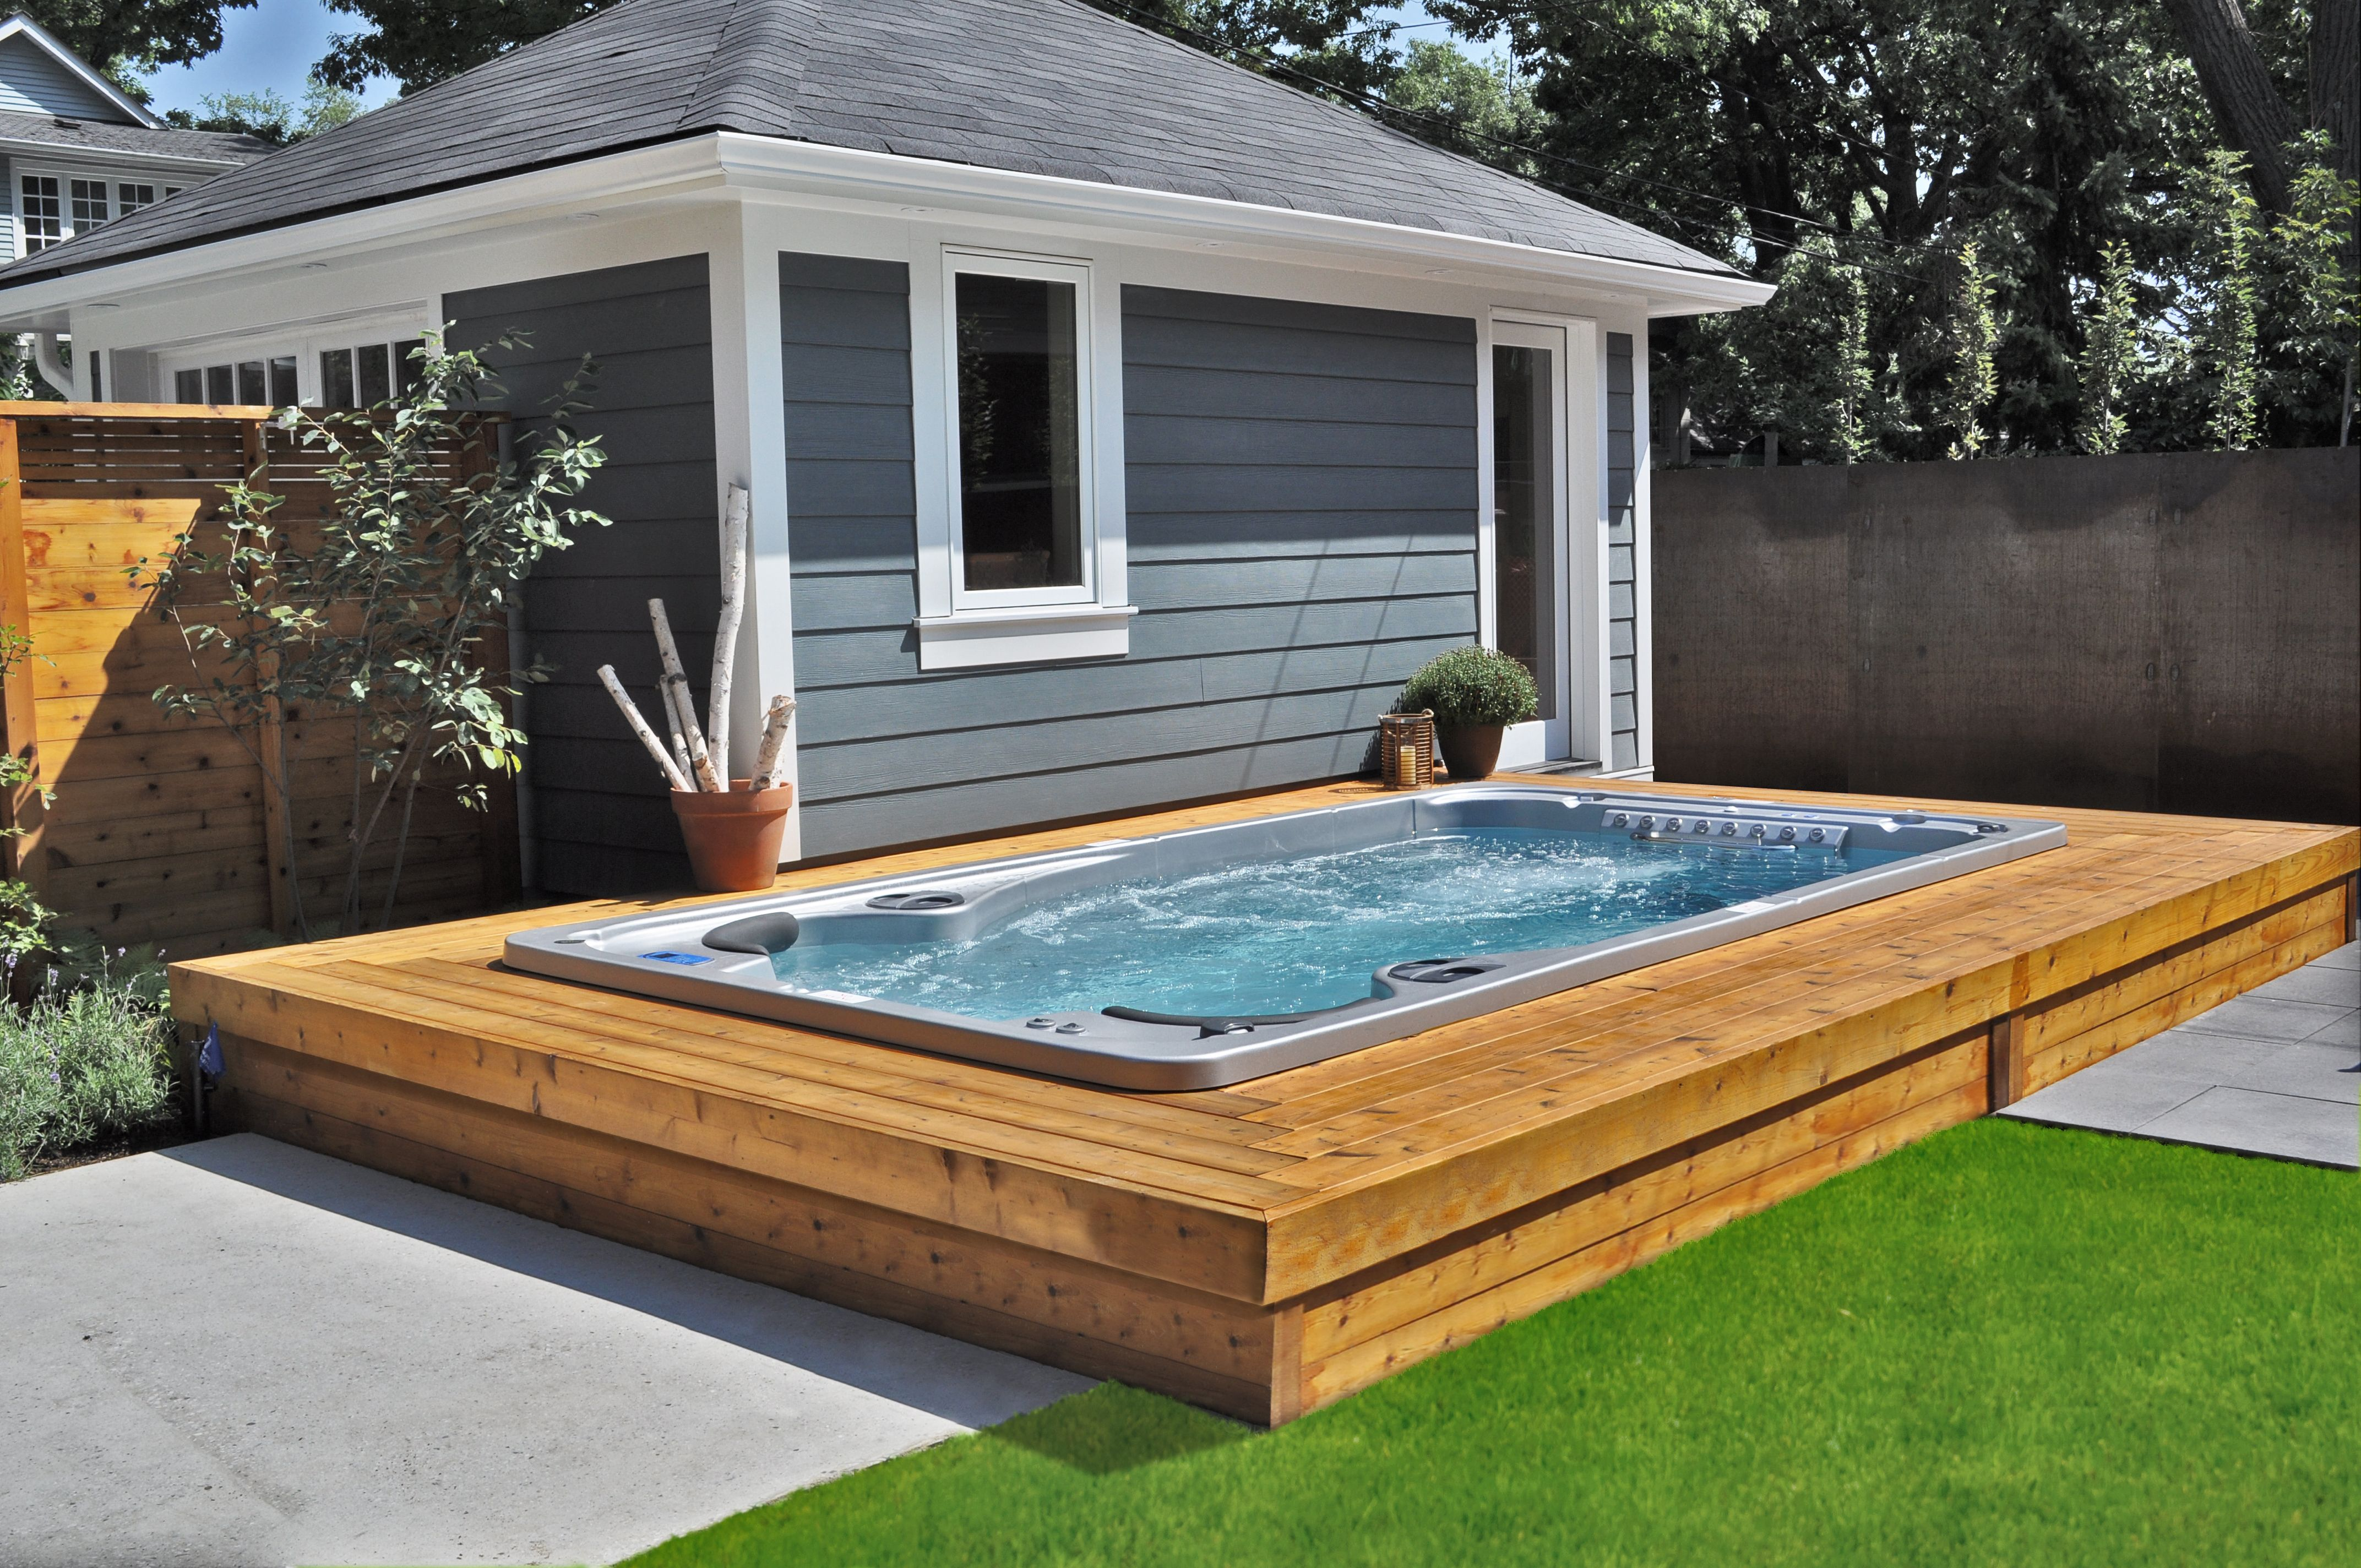 Spa Pool Ideas swimming poolcool rectangle small spa pool ideas with grey concrete wall also cool lighting Find This Pin And More On Swim Spa Install Ideas